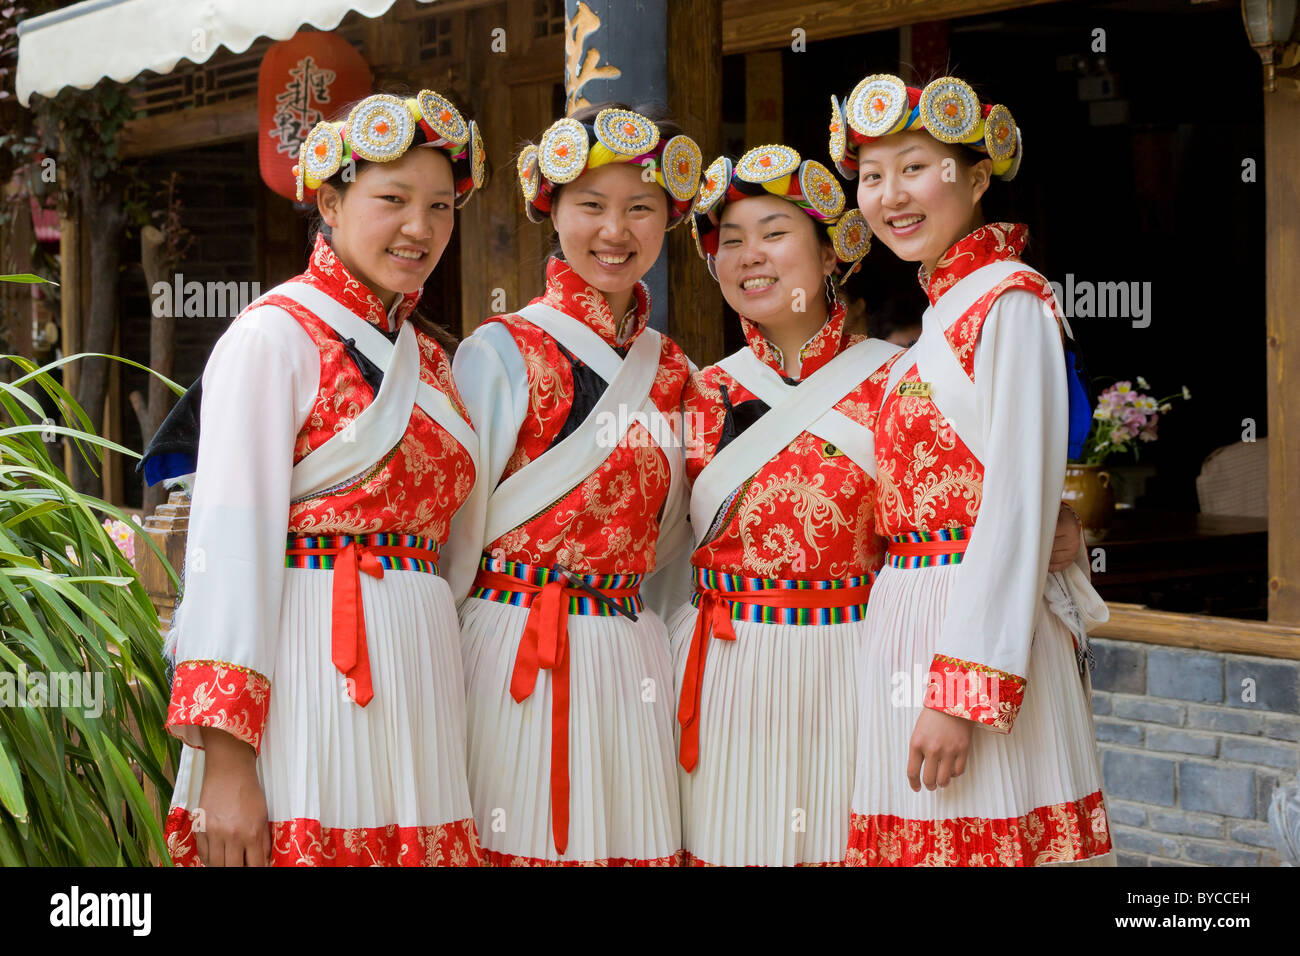 Four young Naxi women in traditional costume in Lijiang old town, Yunnan Province, China. JMH4761 - Stock Image